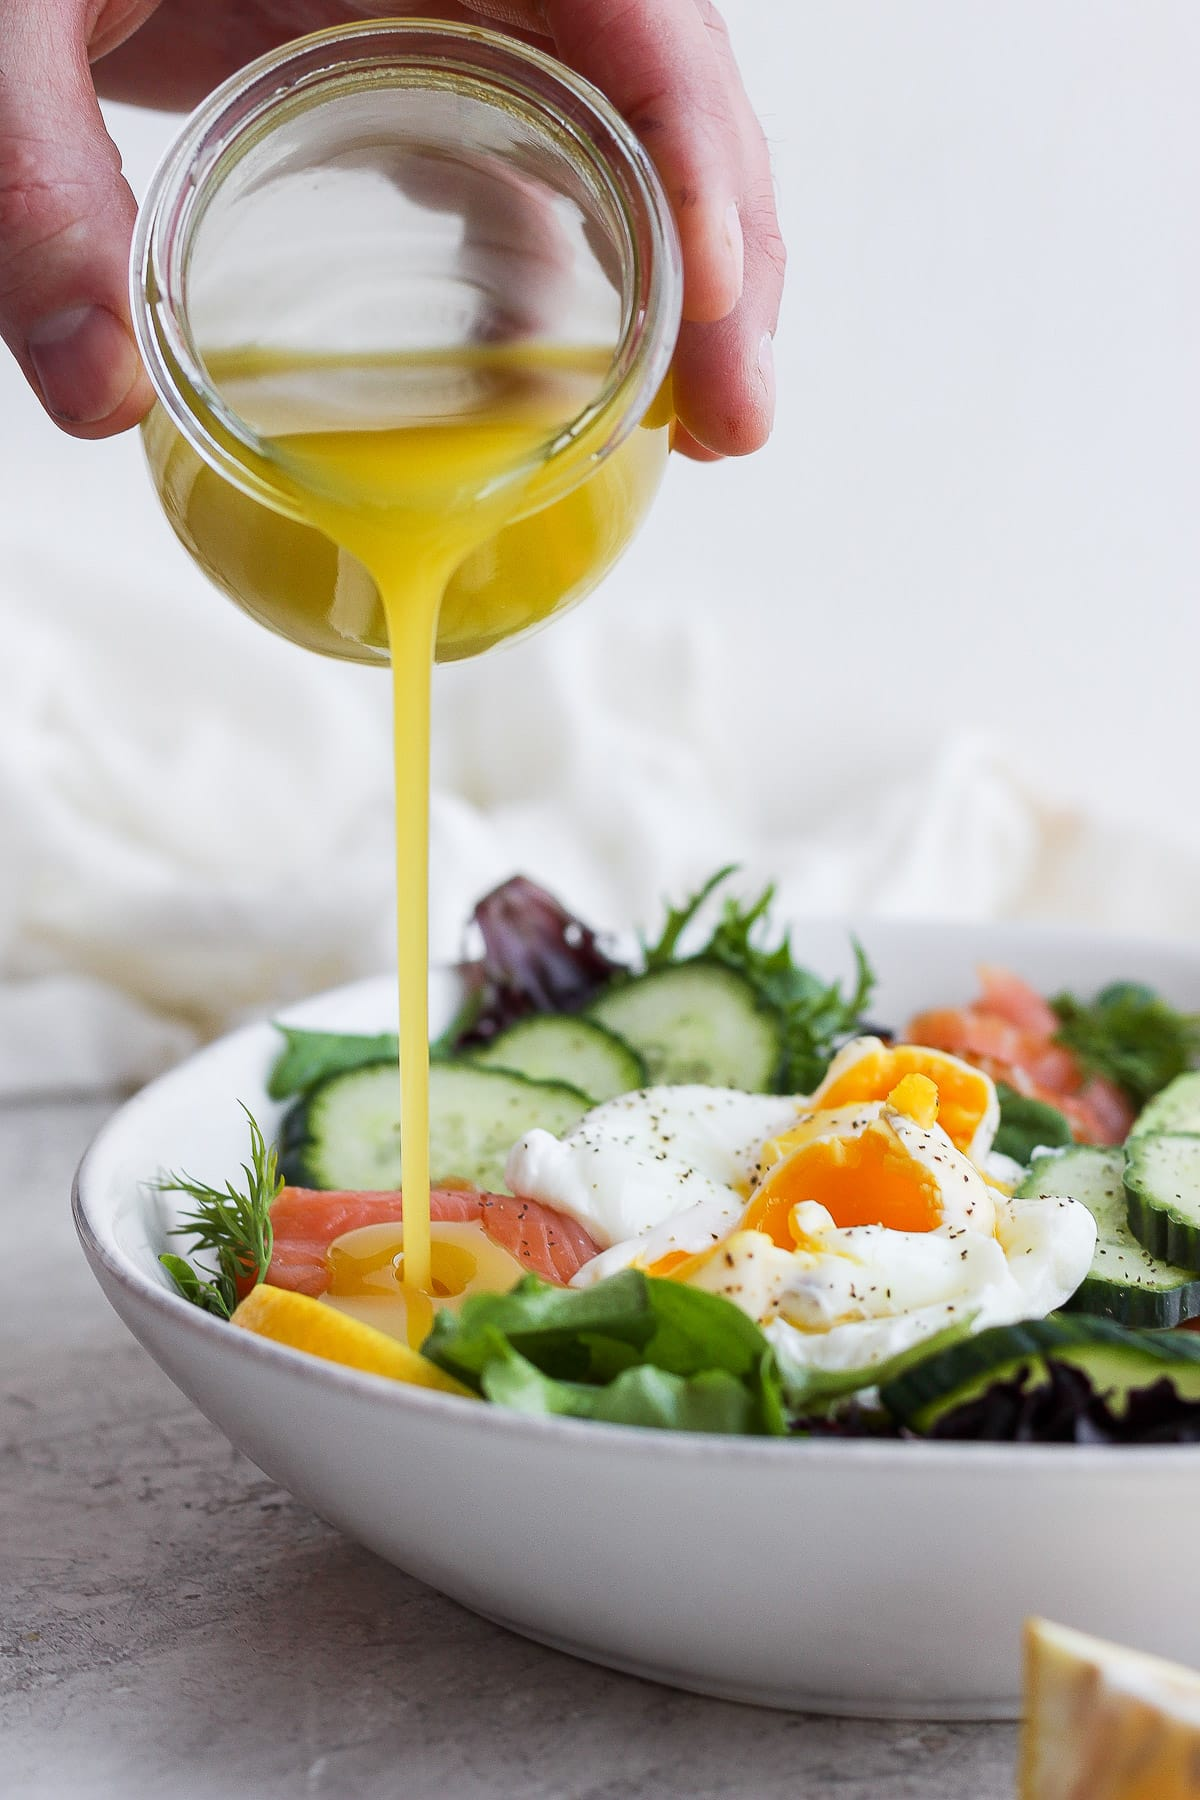 Someone pouring lemon dill vinaigrette into a bowl of salad.